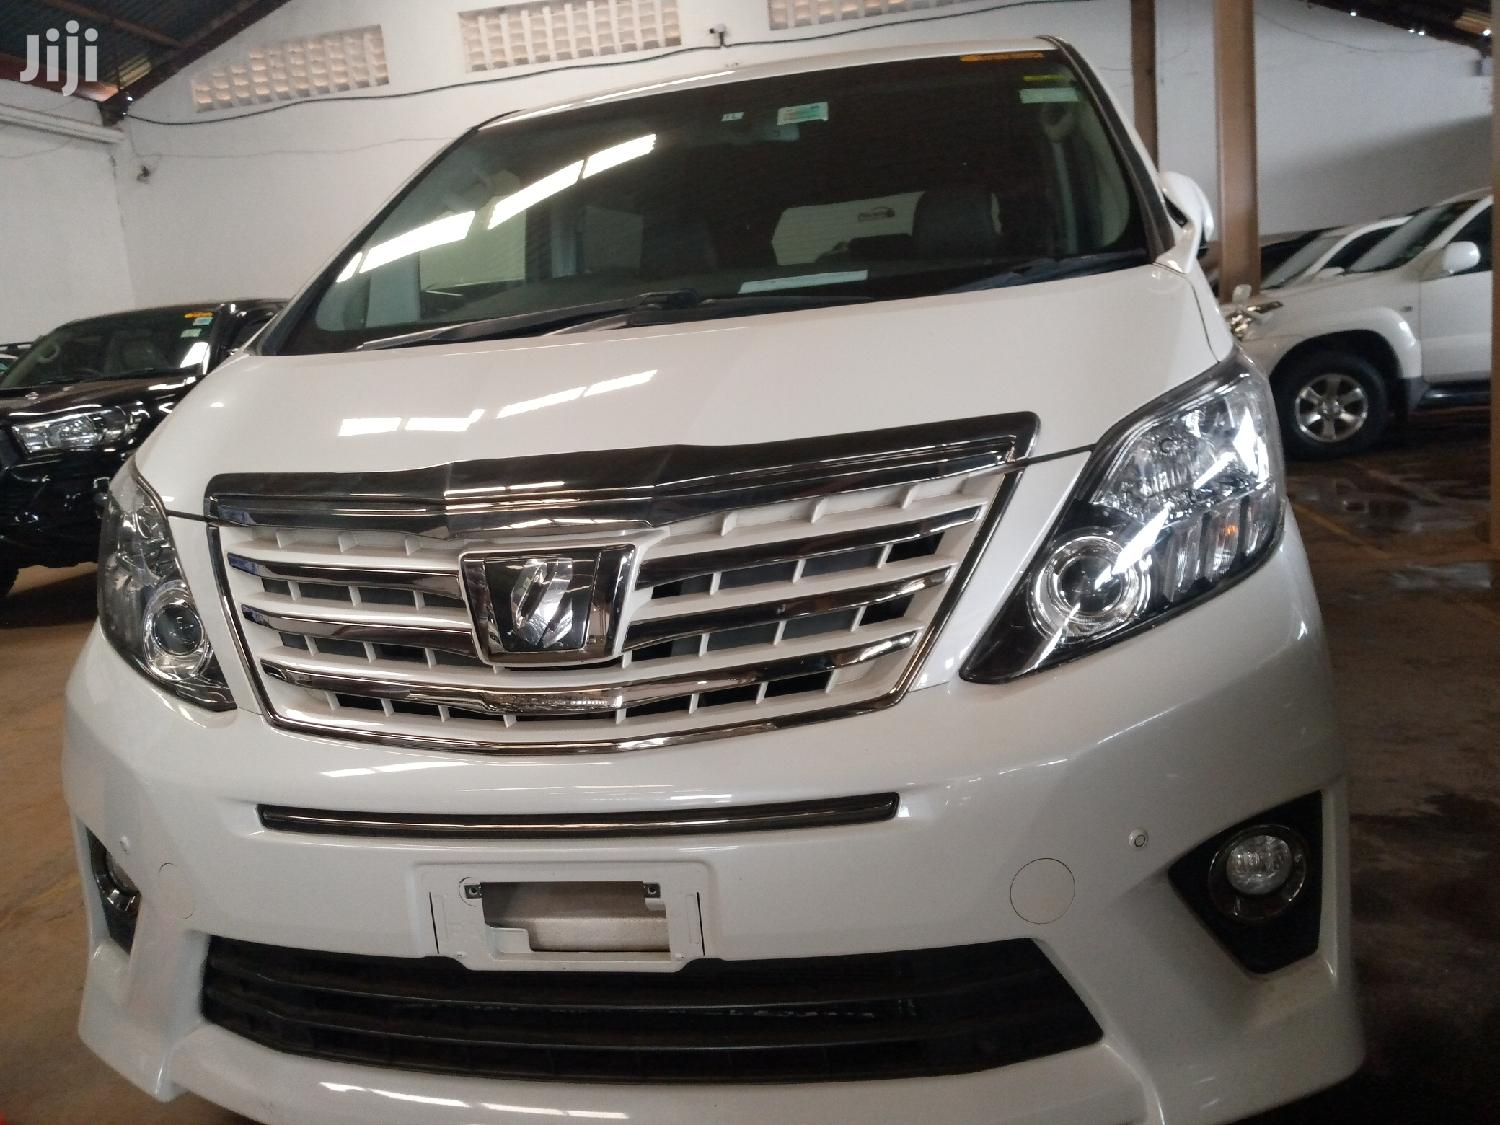 New Toyota Alphard 2012 White | Cars for sale in Kampala, Central Region, Uganda